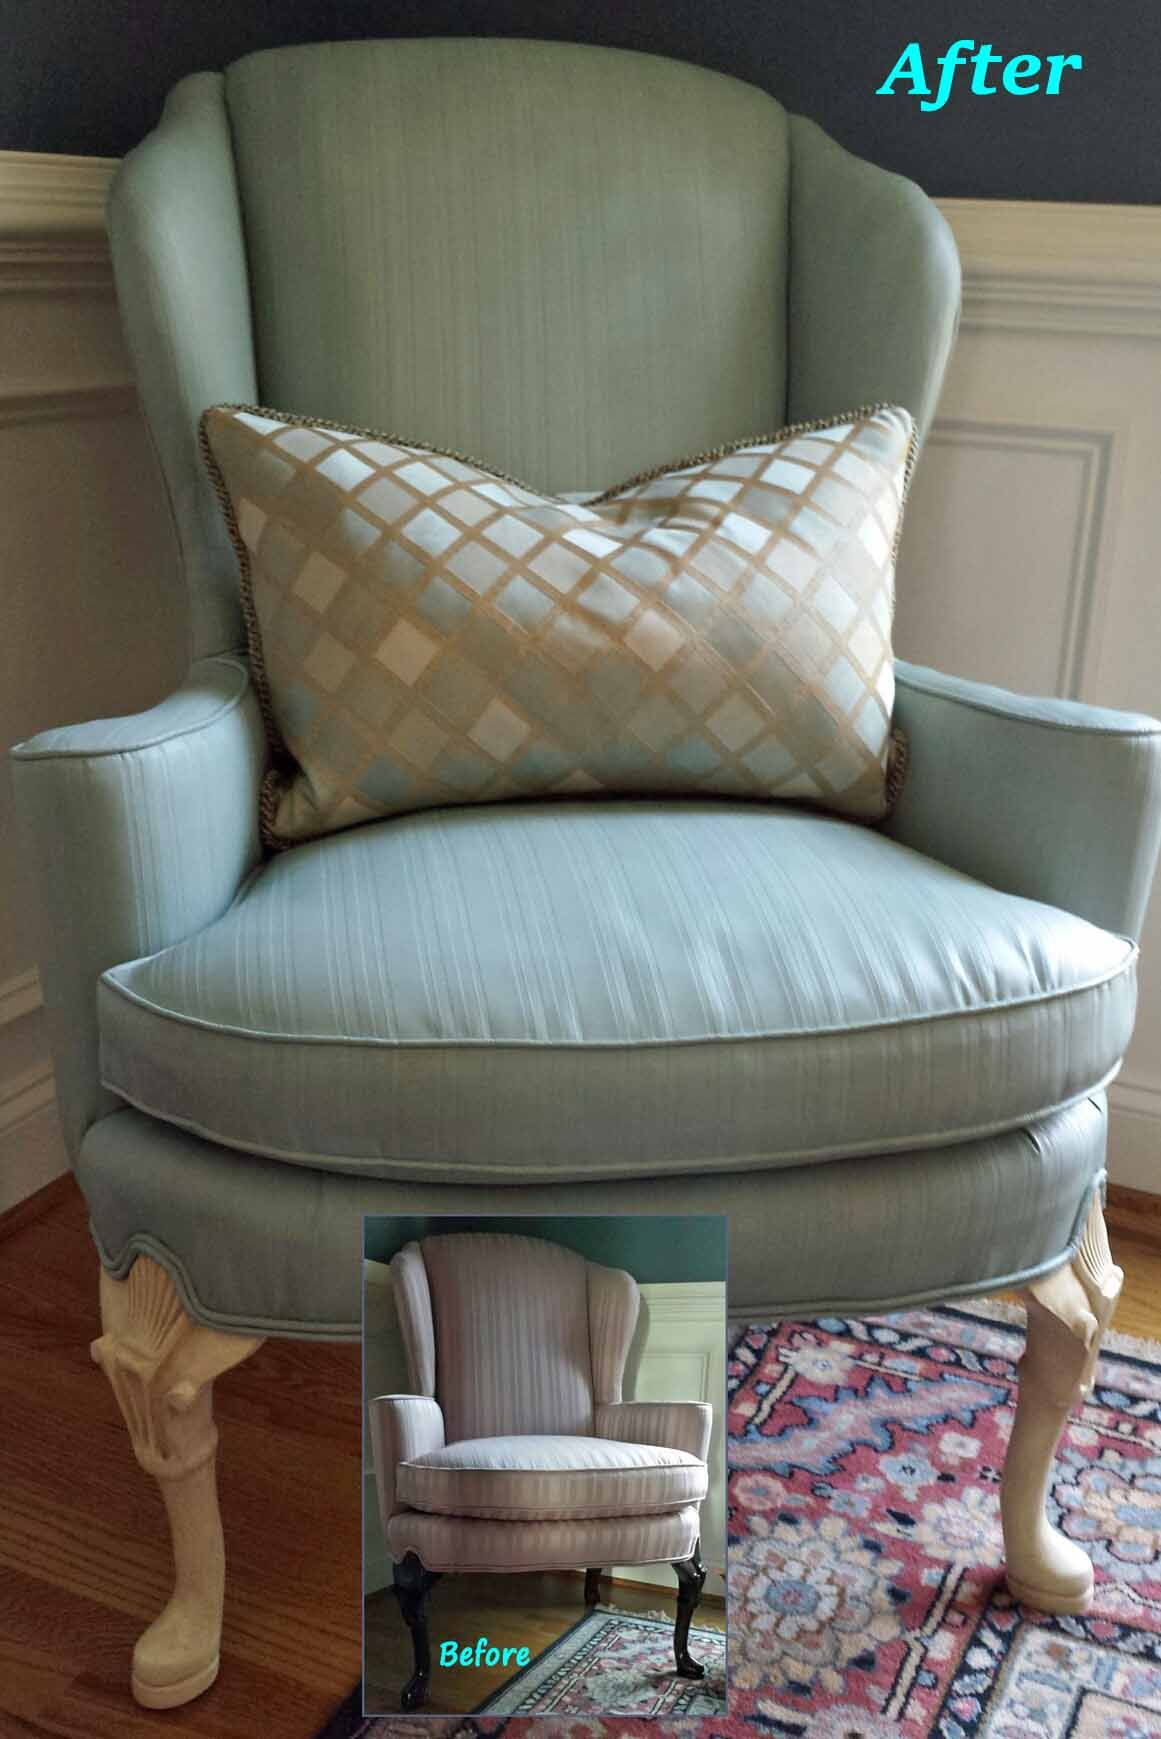 Reupholster Egg Chair Wing Chair Upholstery Painted With Annie Sloan S Chalk Paint In